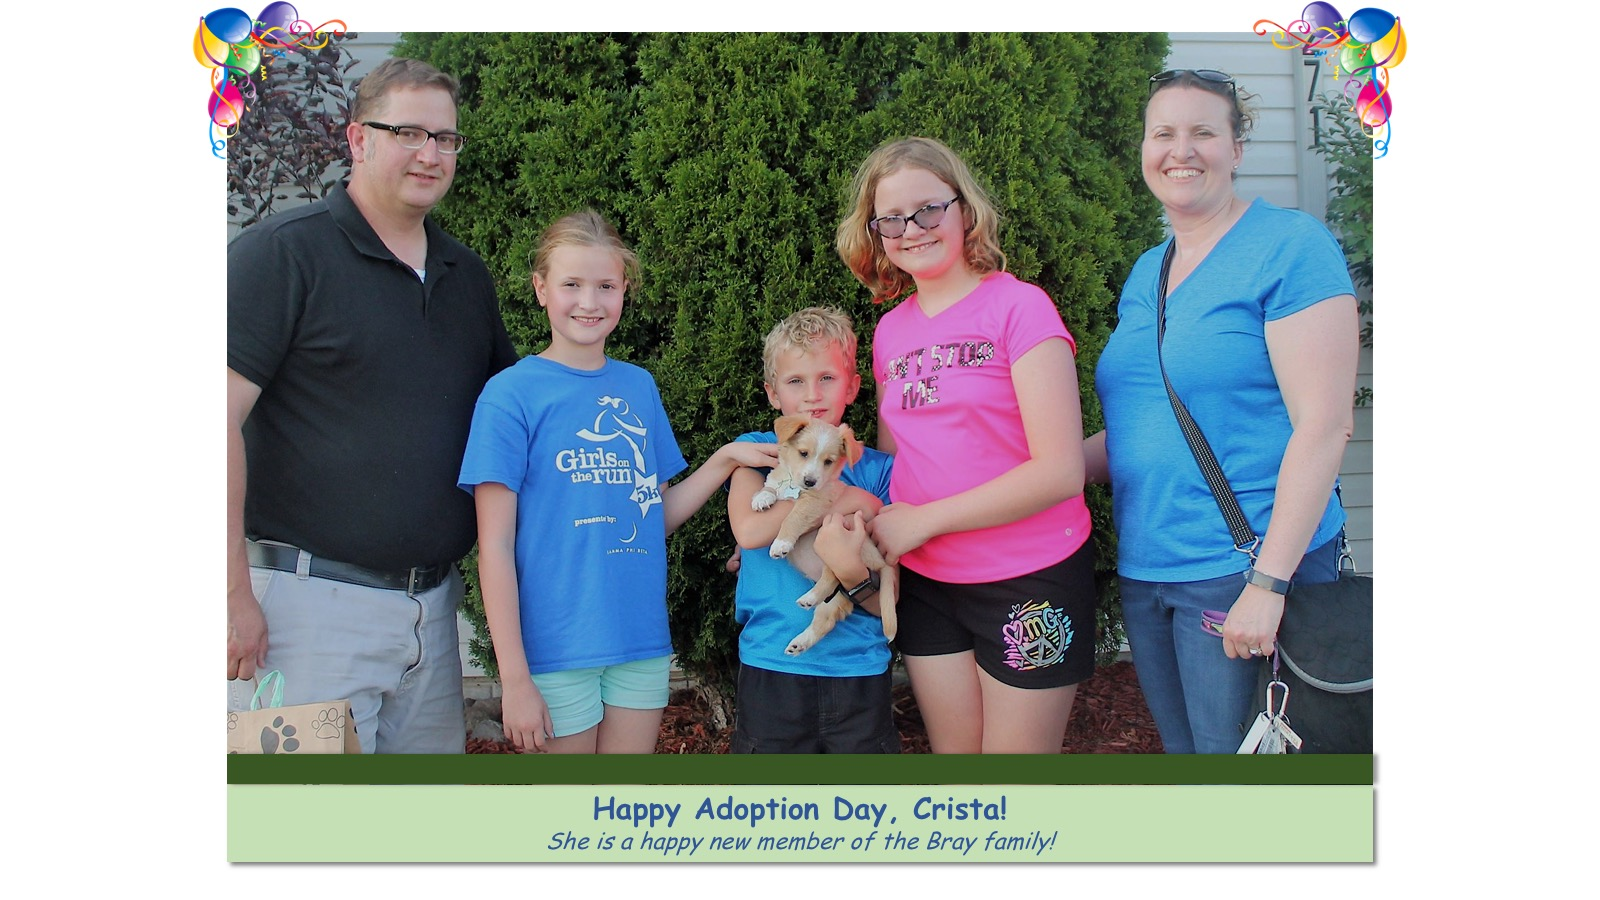 Crista_Adoption_Photo_2018.jpg